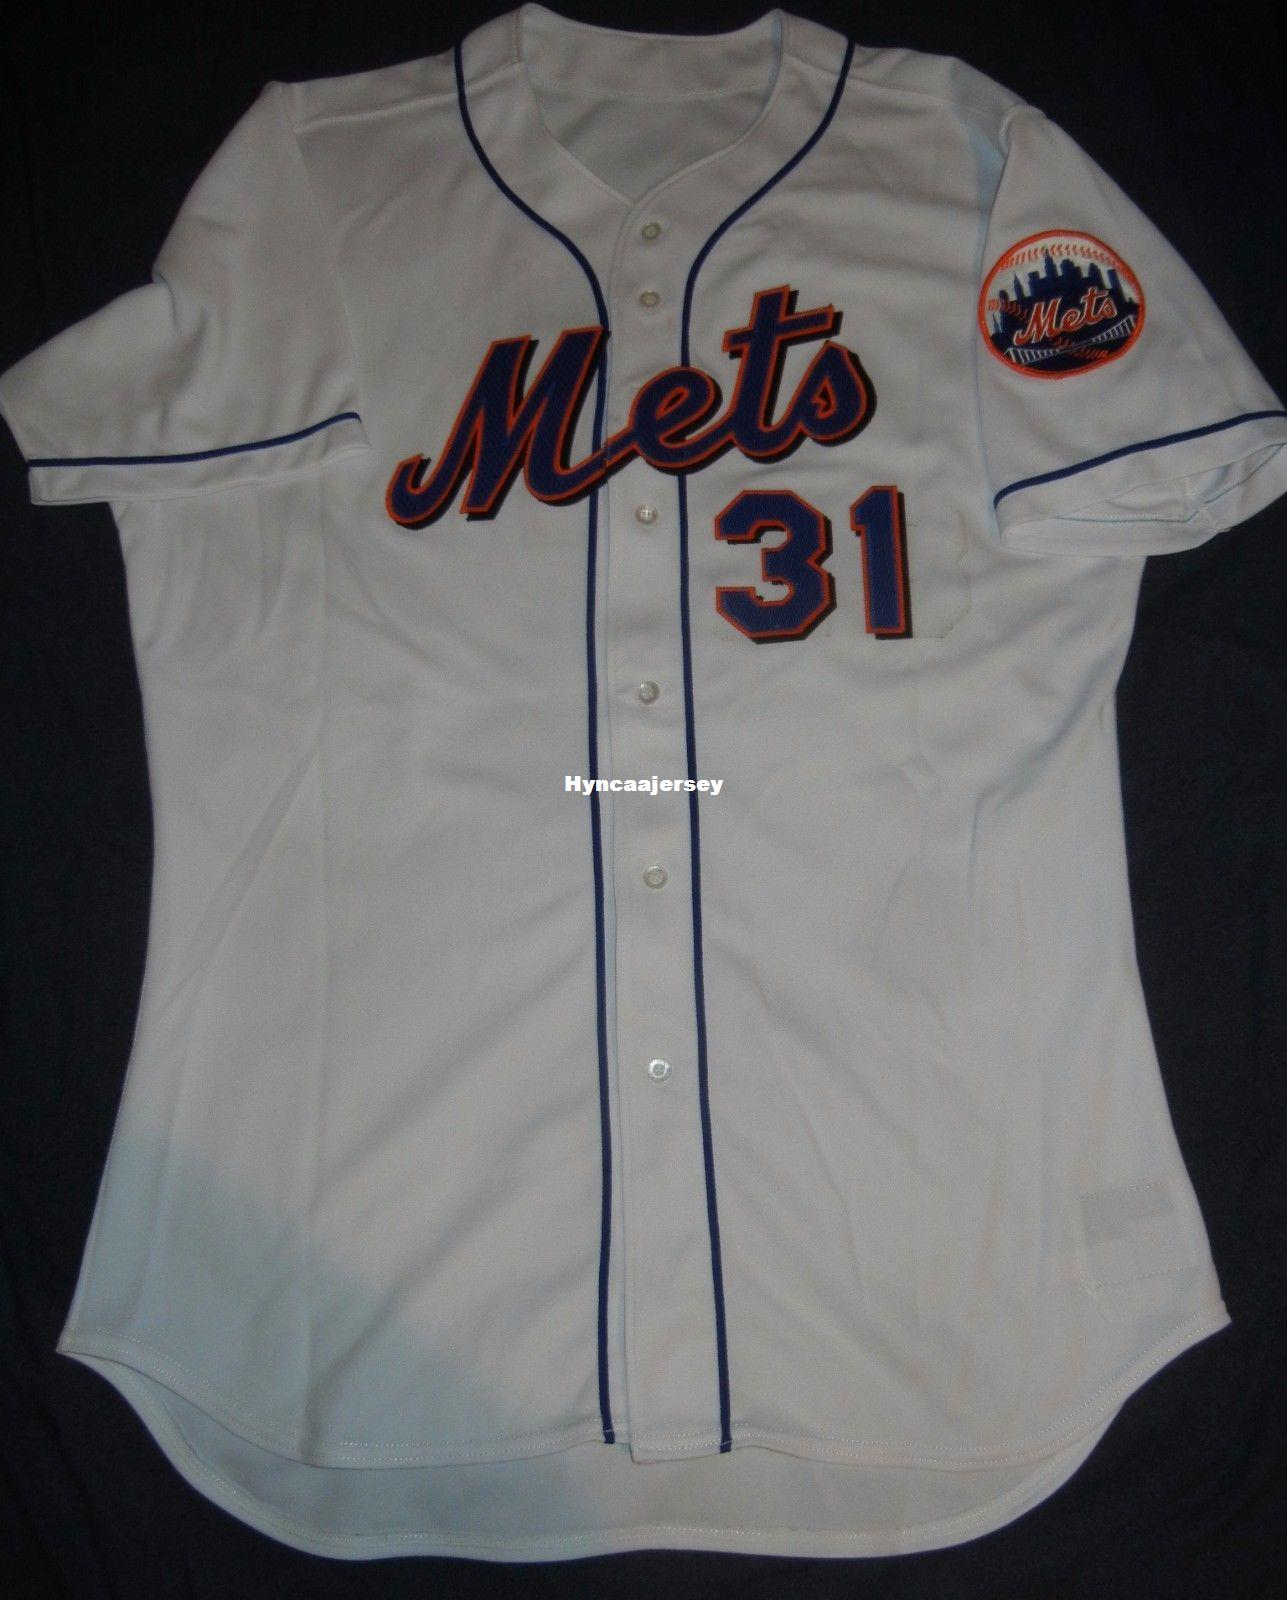 d7d8d9774b9 ... wholesale 2019 cheap retro 31 mike piazza rawlings top new york ny  jersey white 1999 50